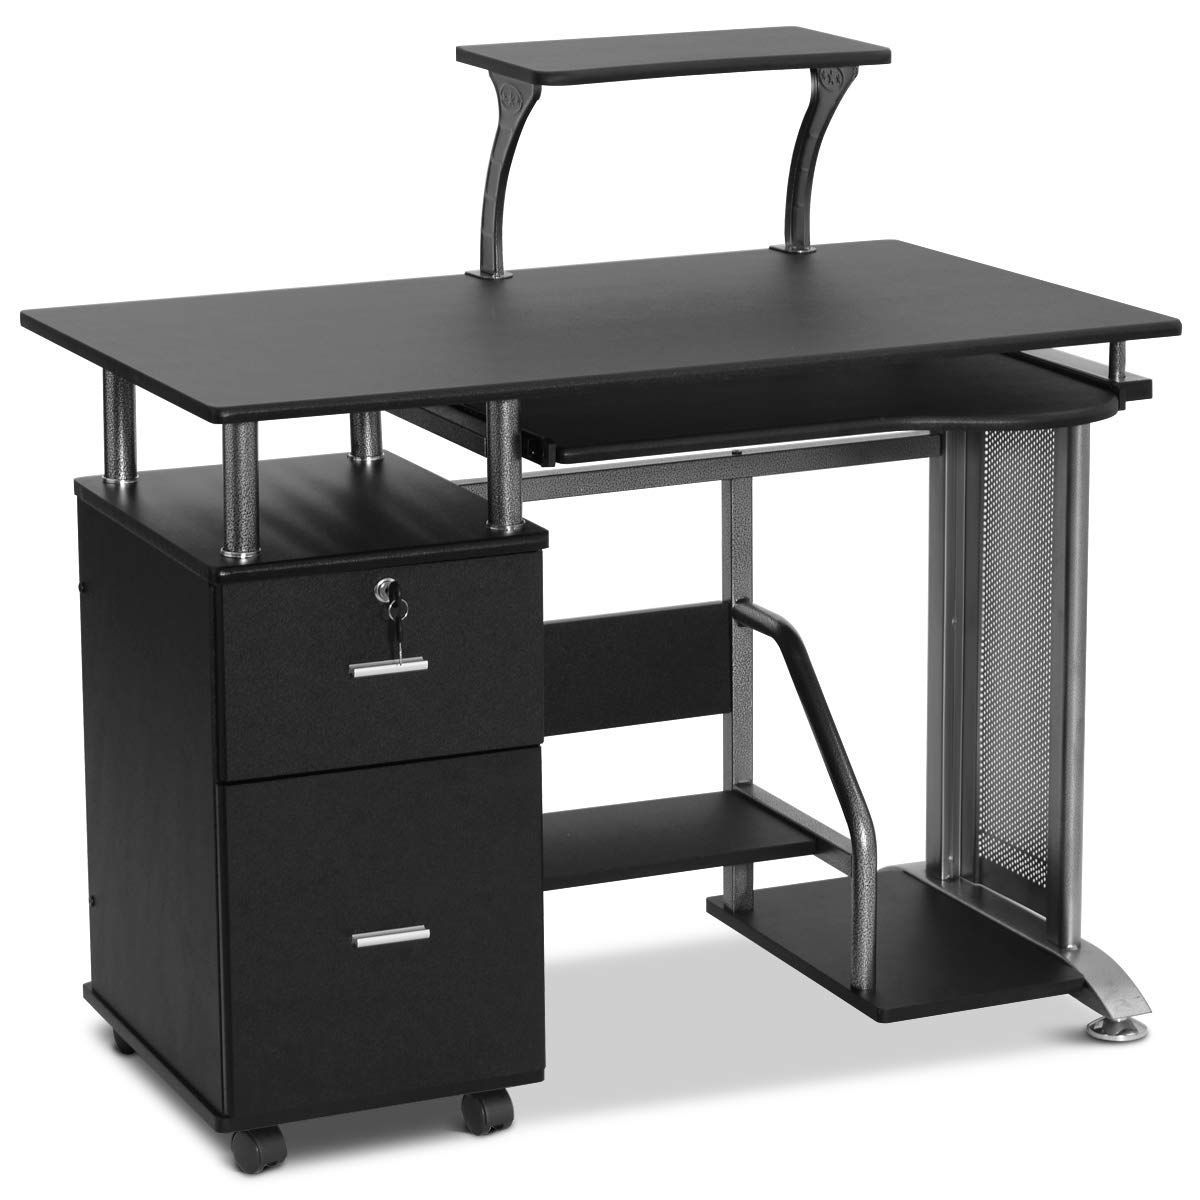 Long Computer Desk With Drawers With Images Black Computer